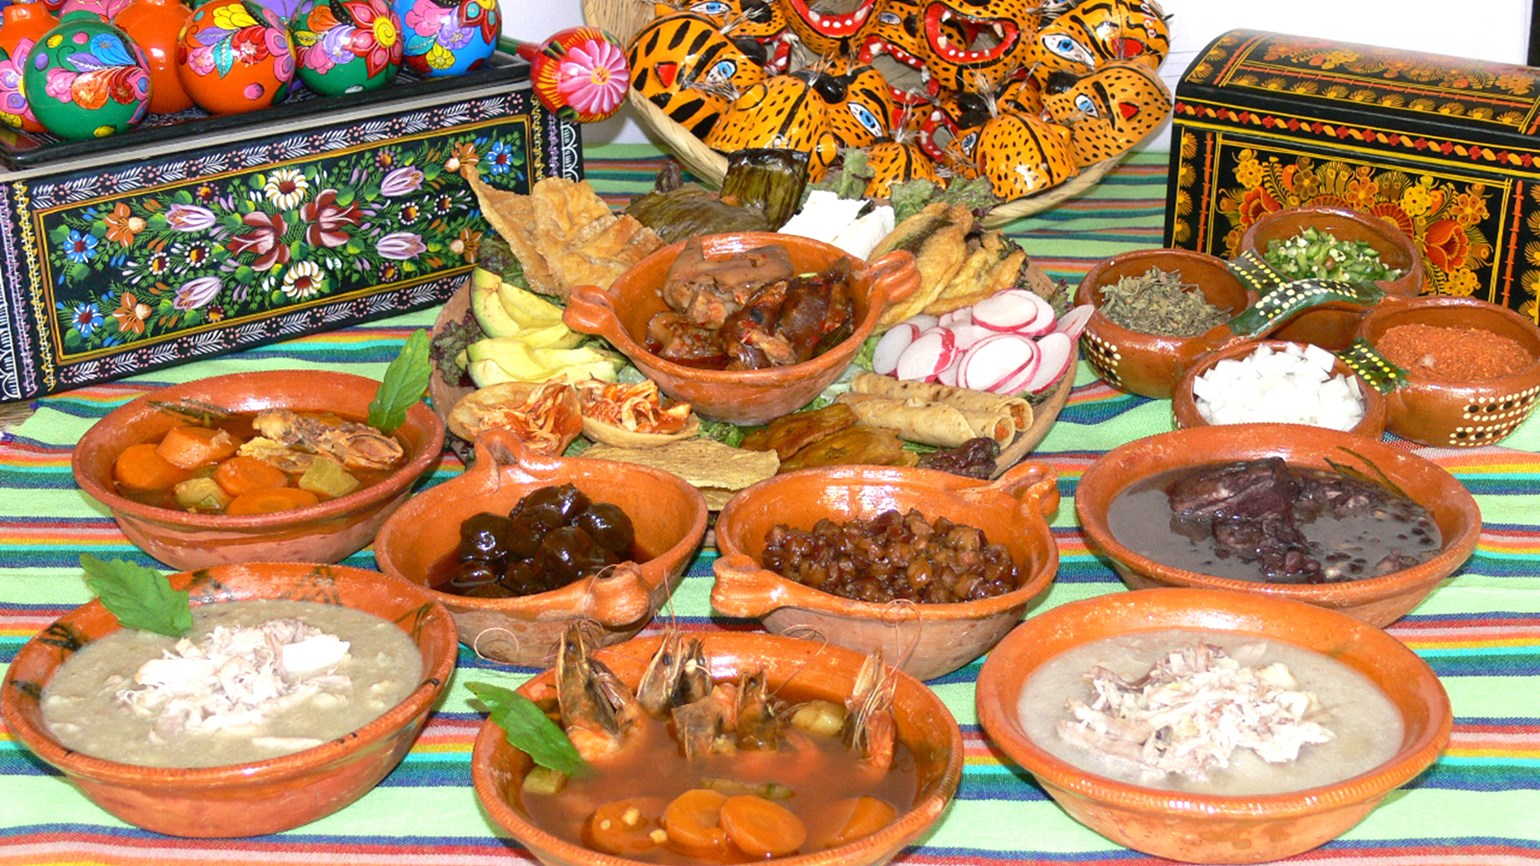 The colorful cuisine and culture of Mexico